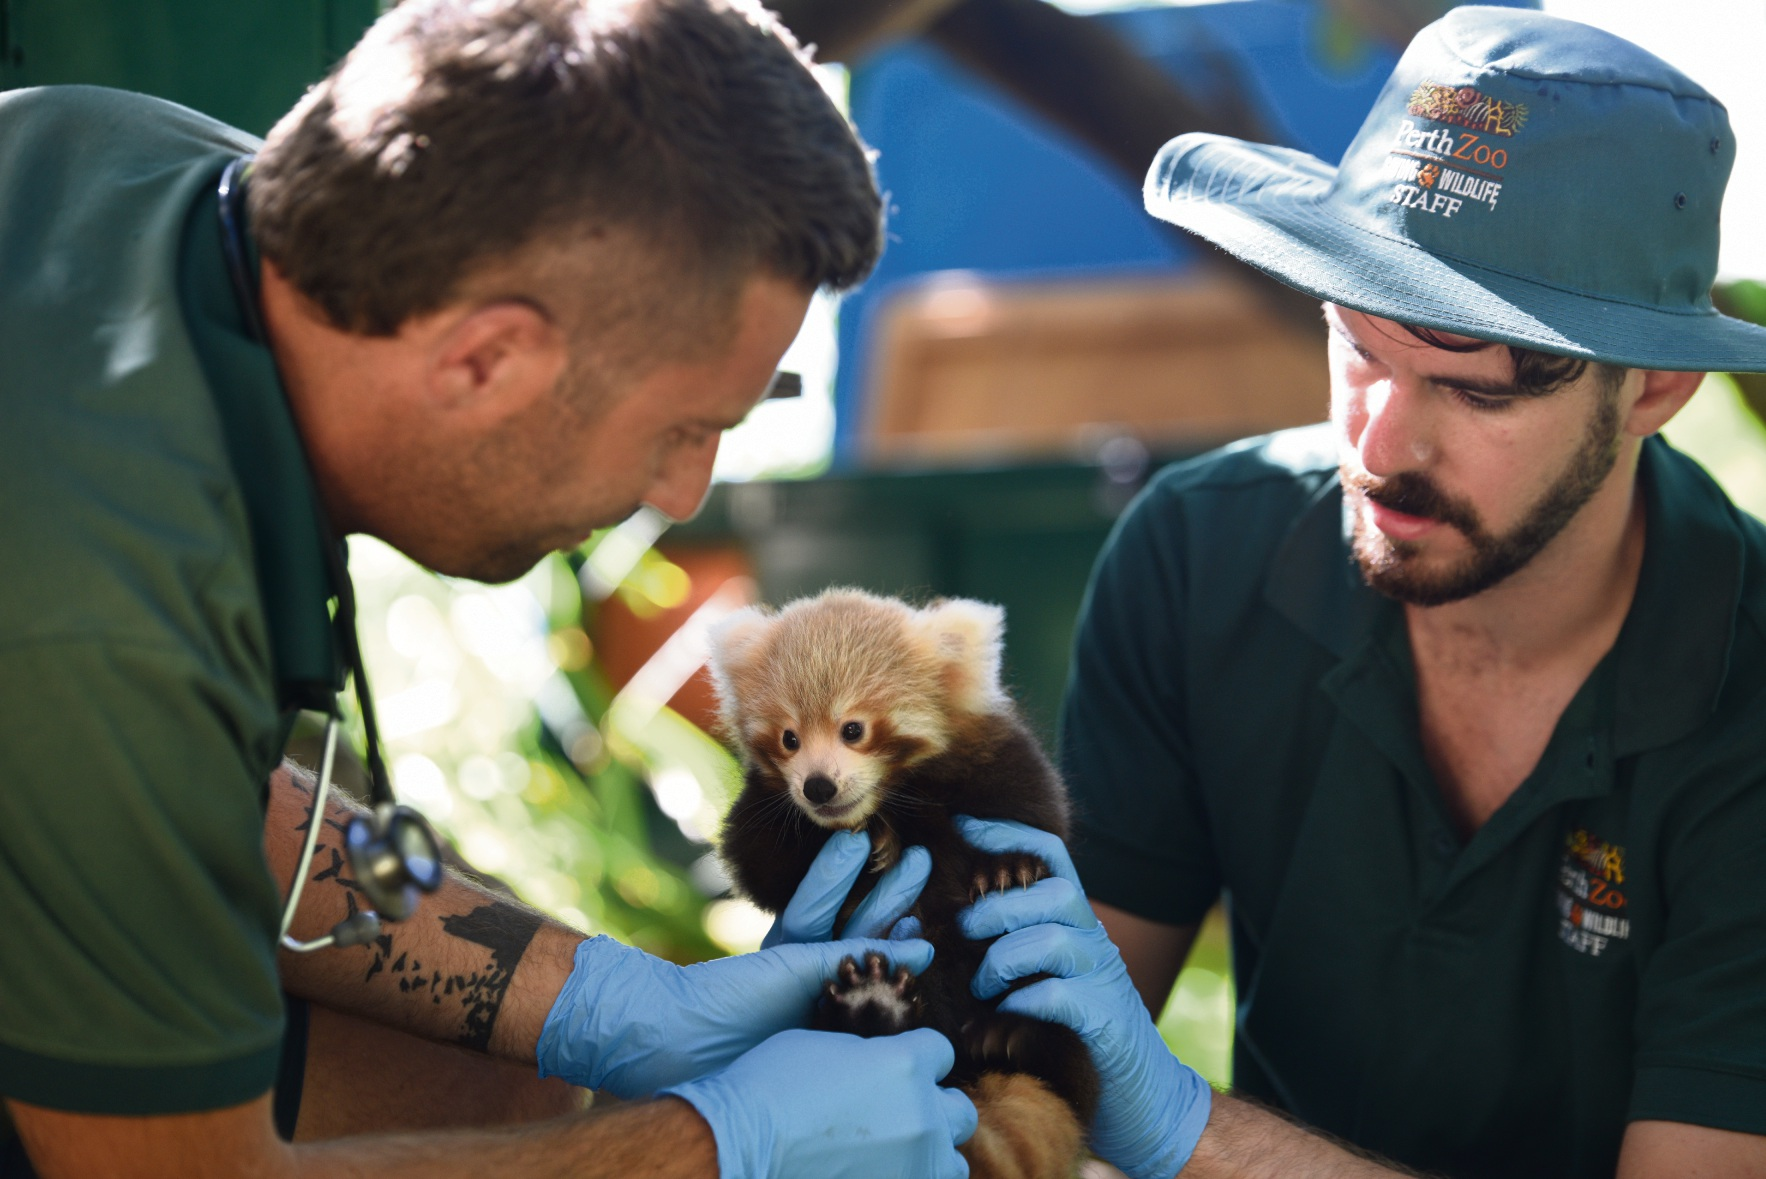 The red panda cub undergoing its first health check at Perth Zoo. Picture: Alex Asbury.